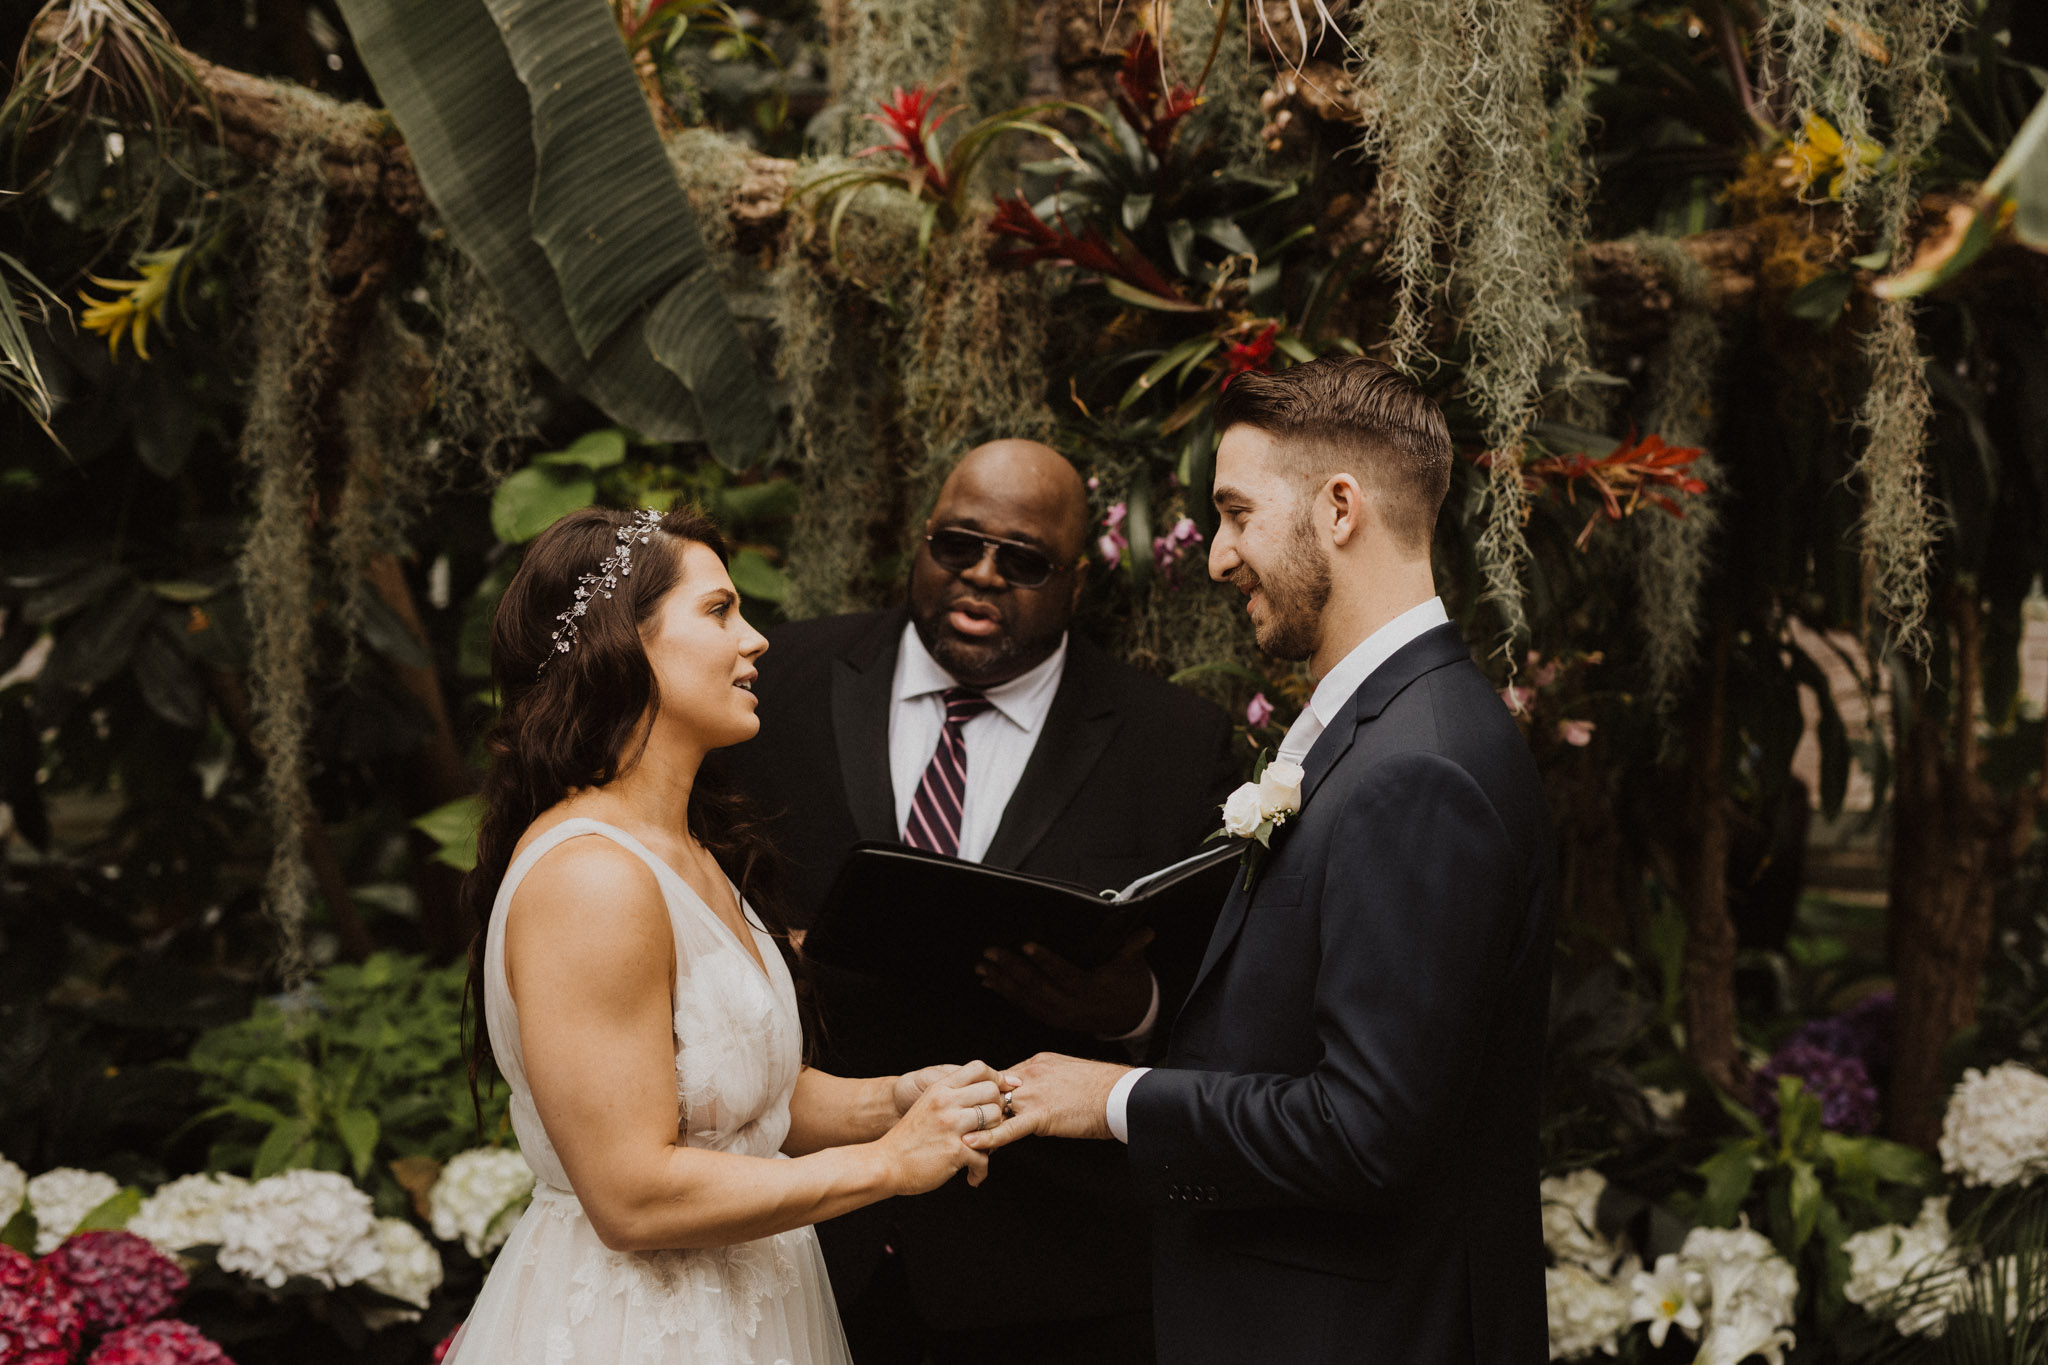 Greenhouse Elopement Allan Gardens Toronto - exchanging rings